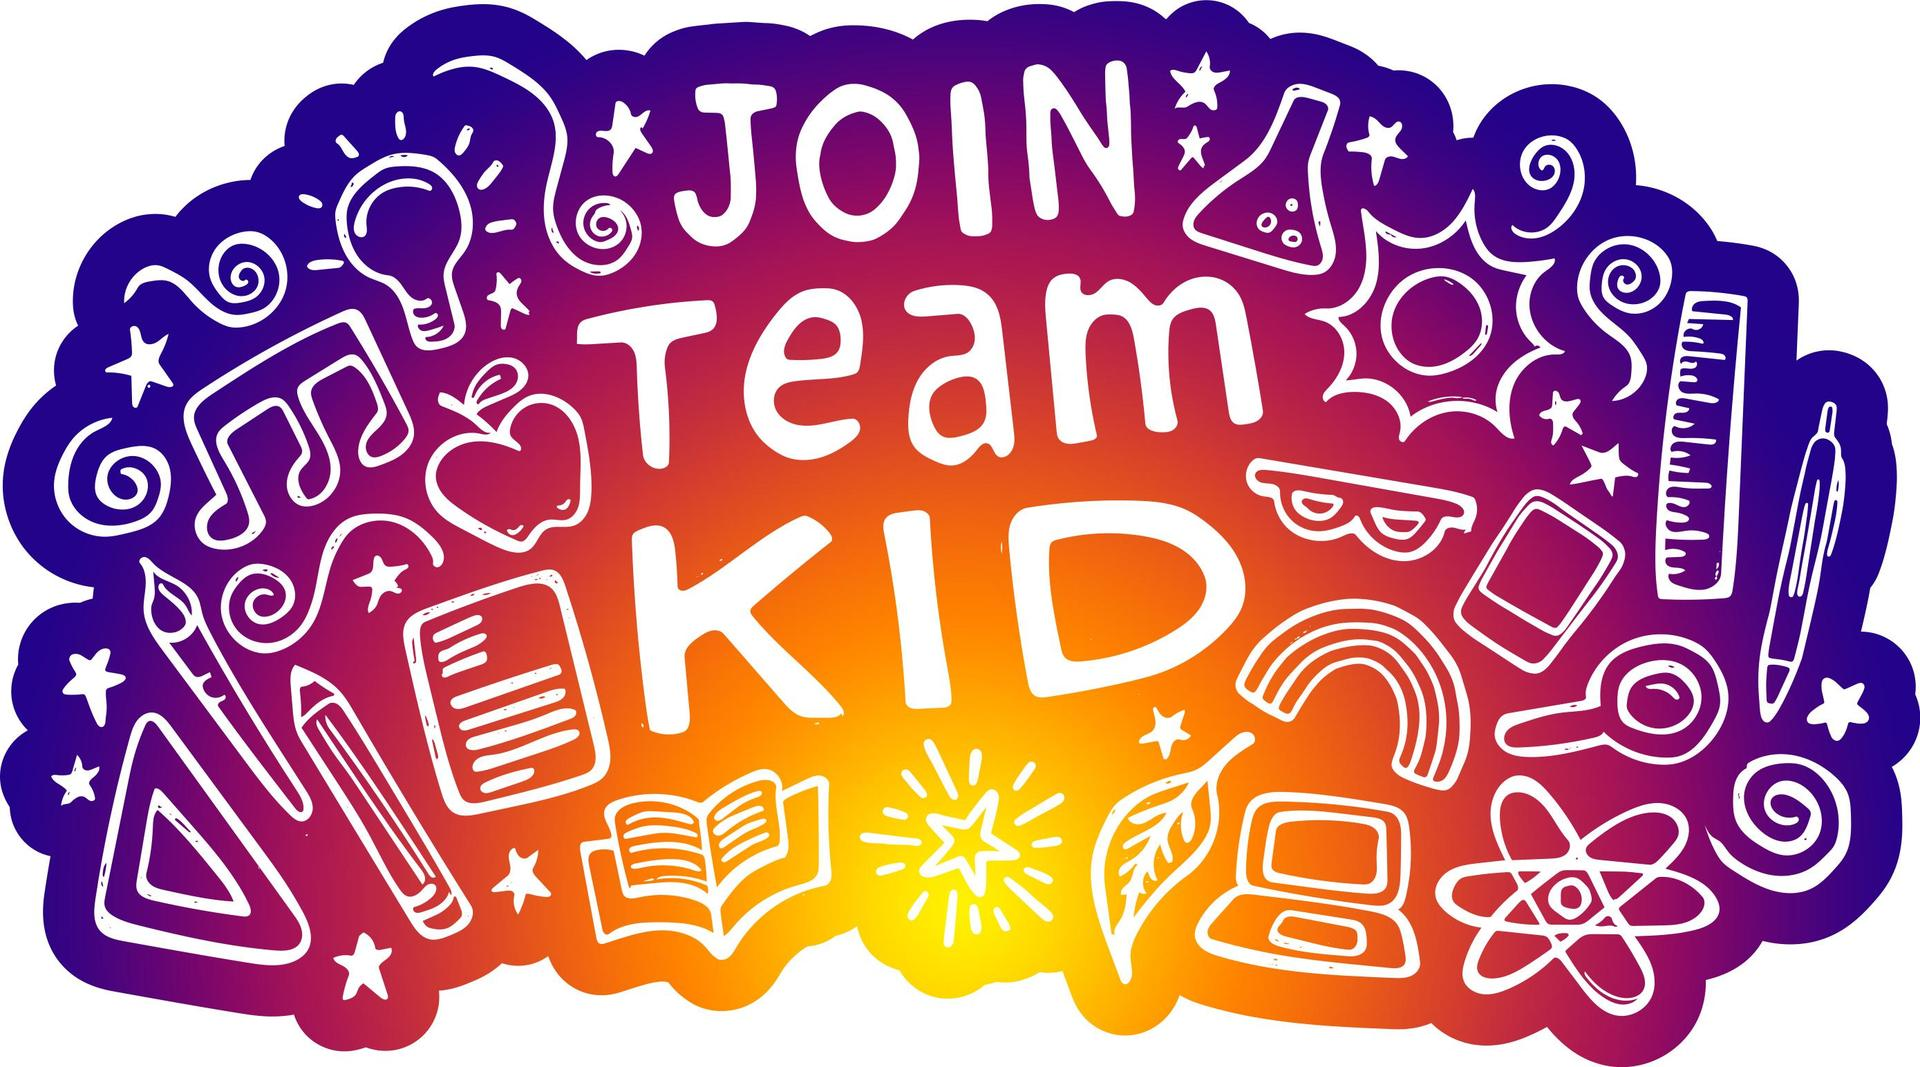 Join Team Kid!